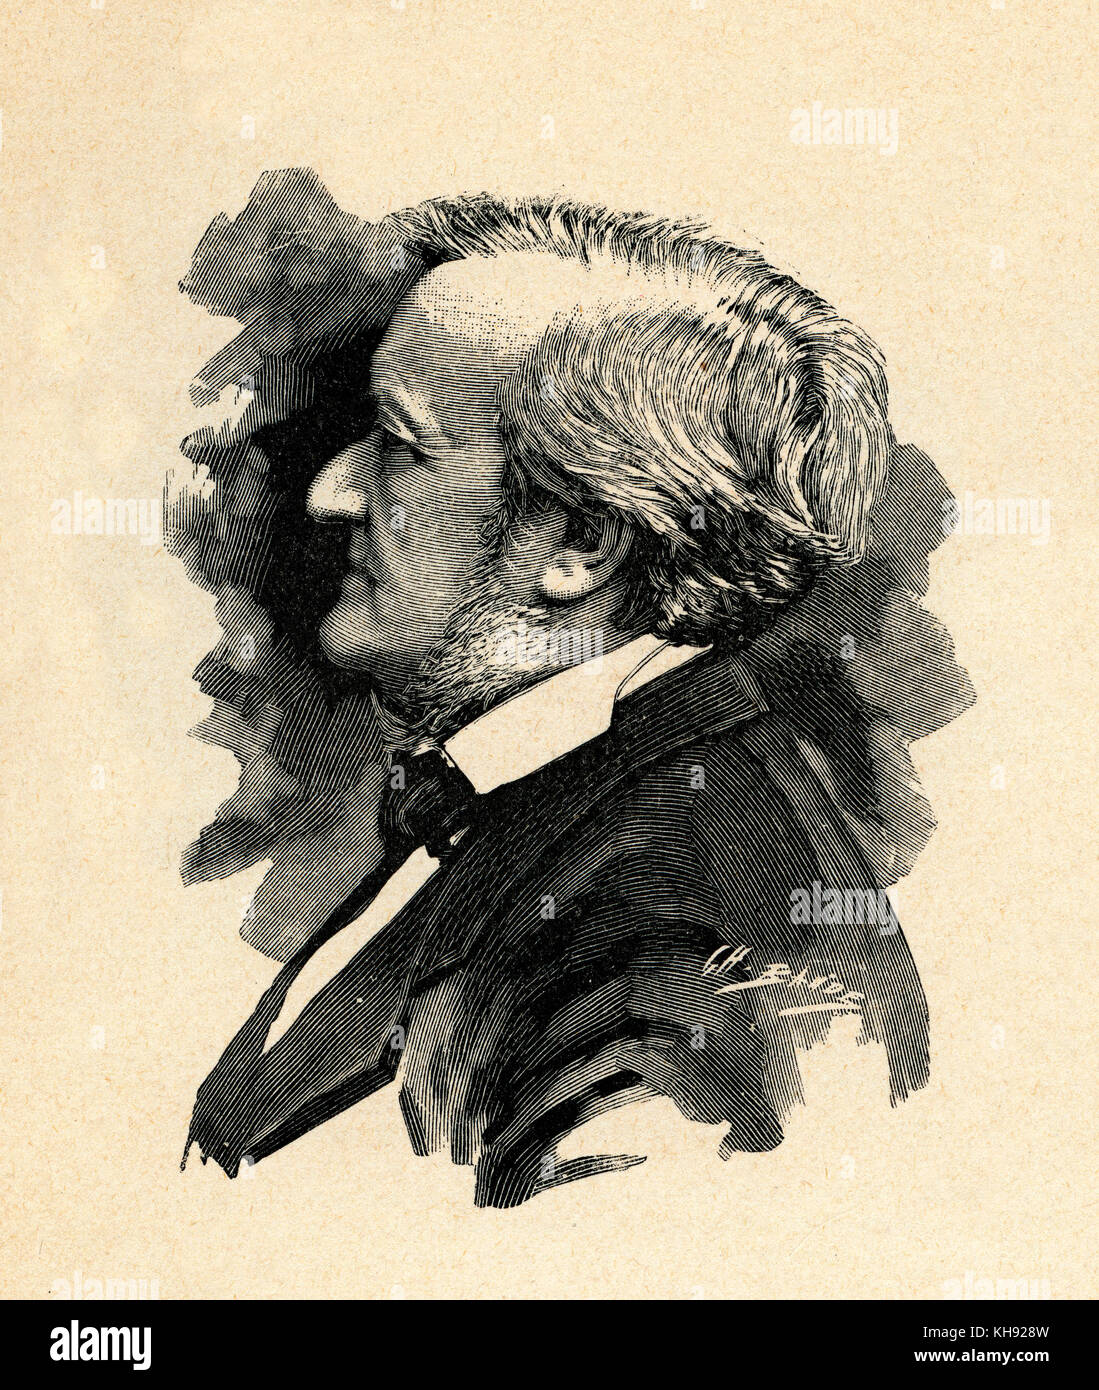 Richard Wagner - wood engraving by Baude after photograph by Elliot et Frey, 1877.  RW: German composer & author, - Stock Image